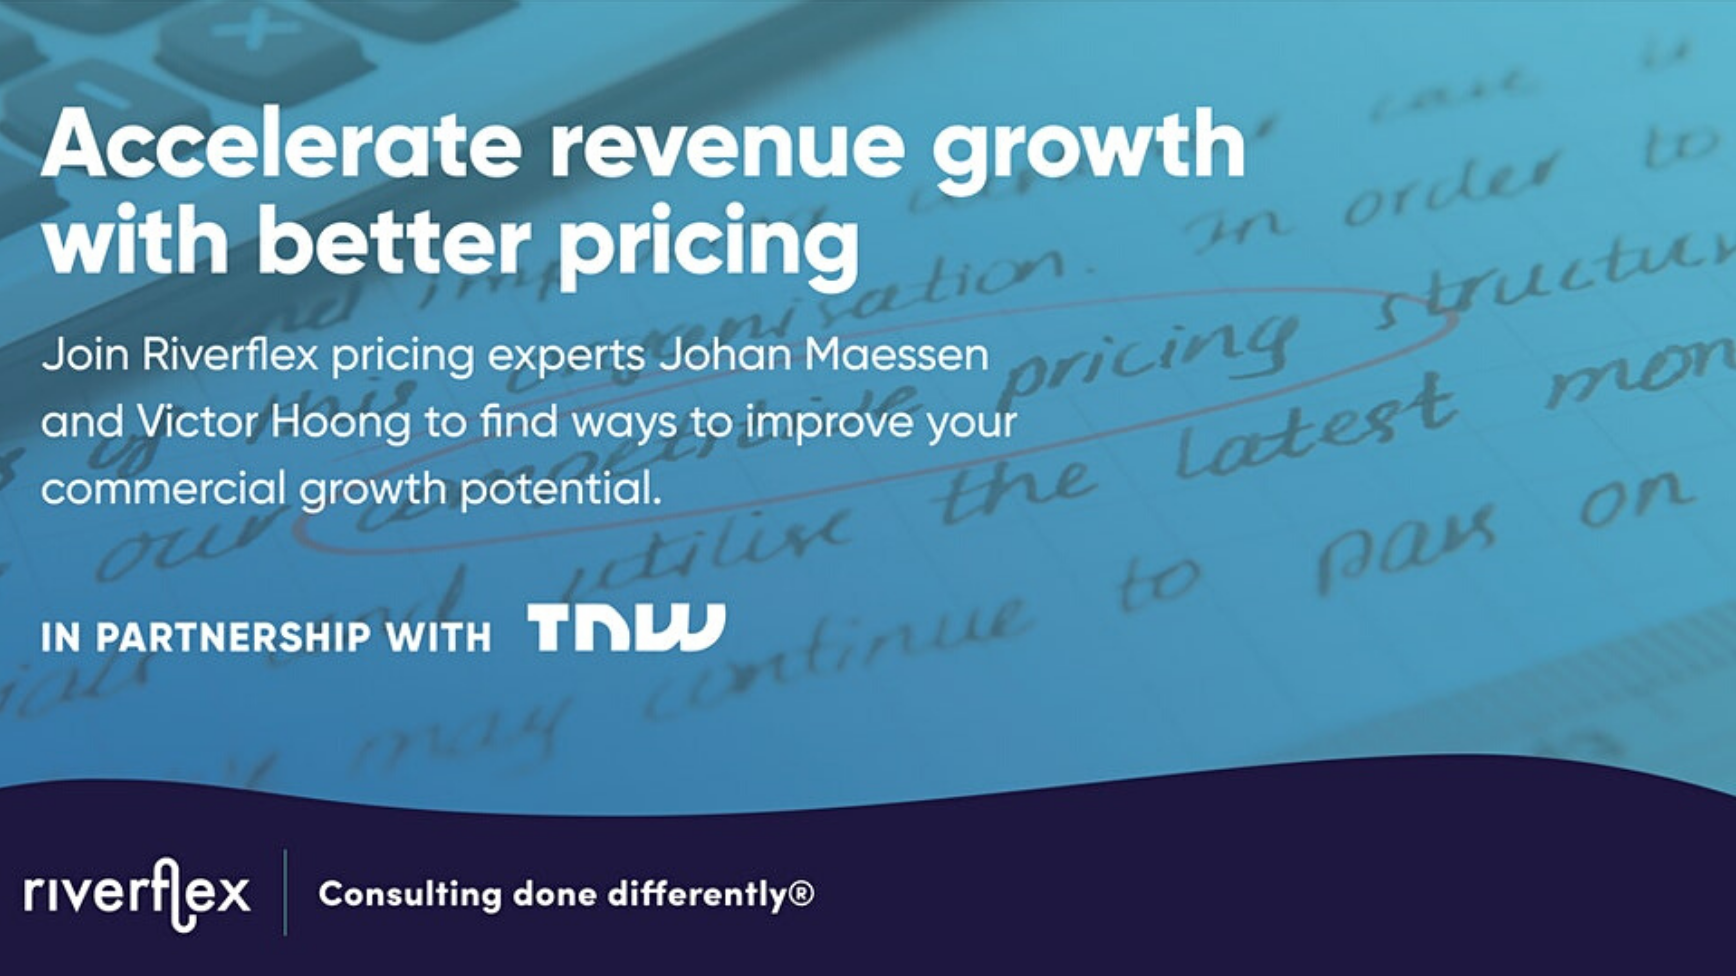 Accelerate revenue growth with better pricing